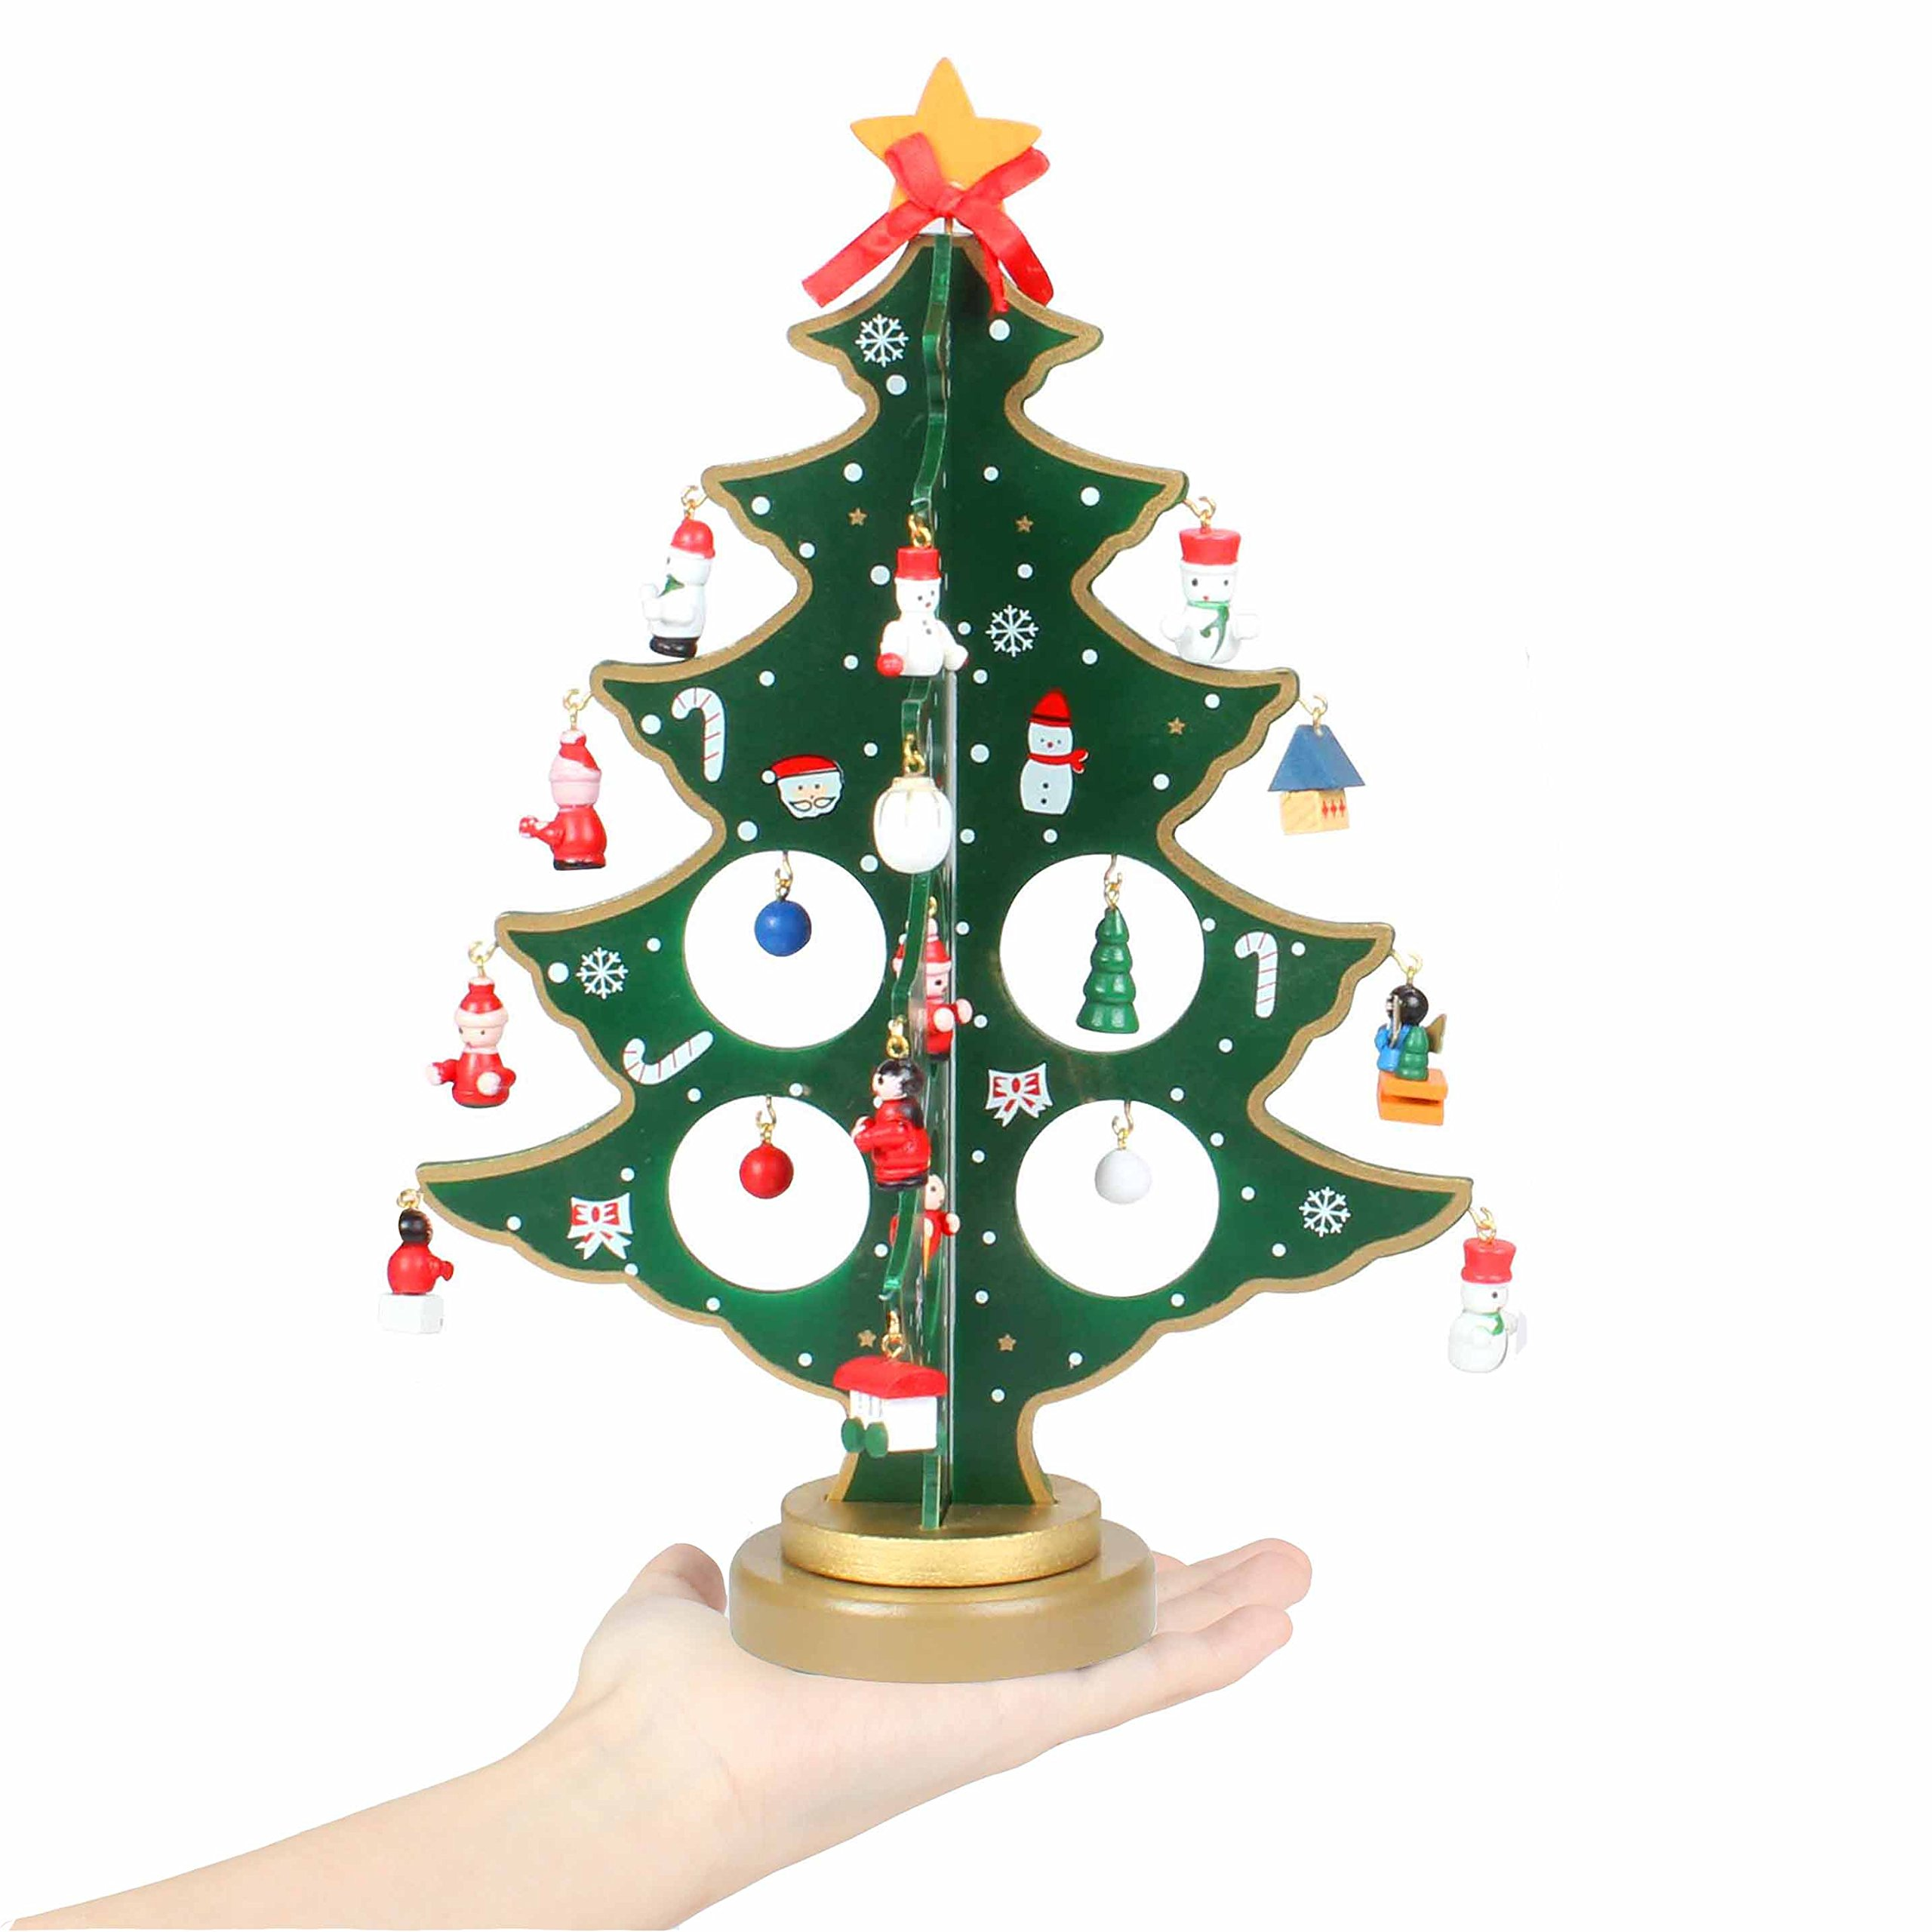 Wooden Christmas Desk Tree Ornaments Festival Party Gift Home Office Decoration tree (Green Tree)